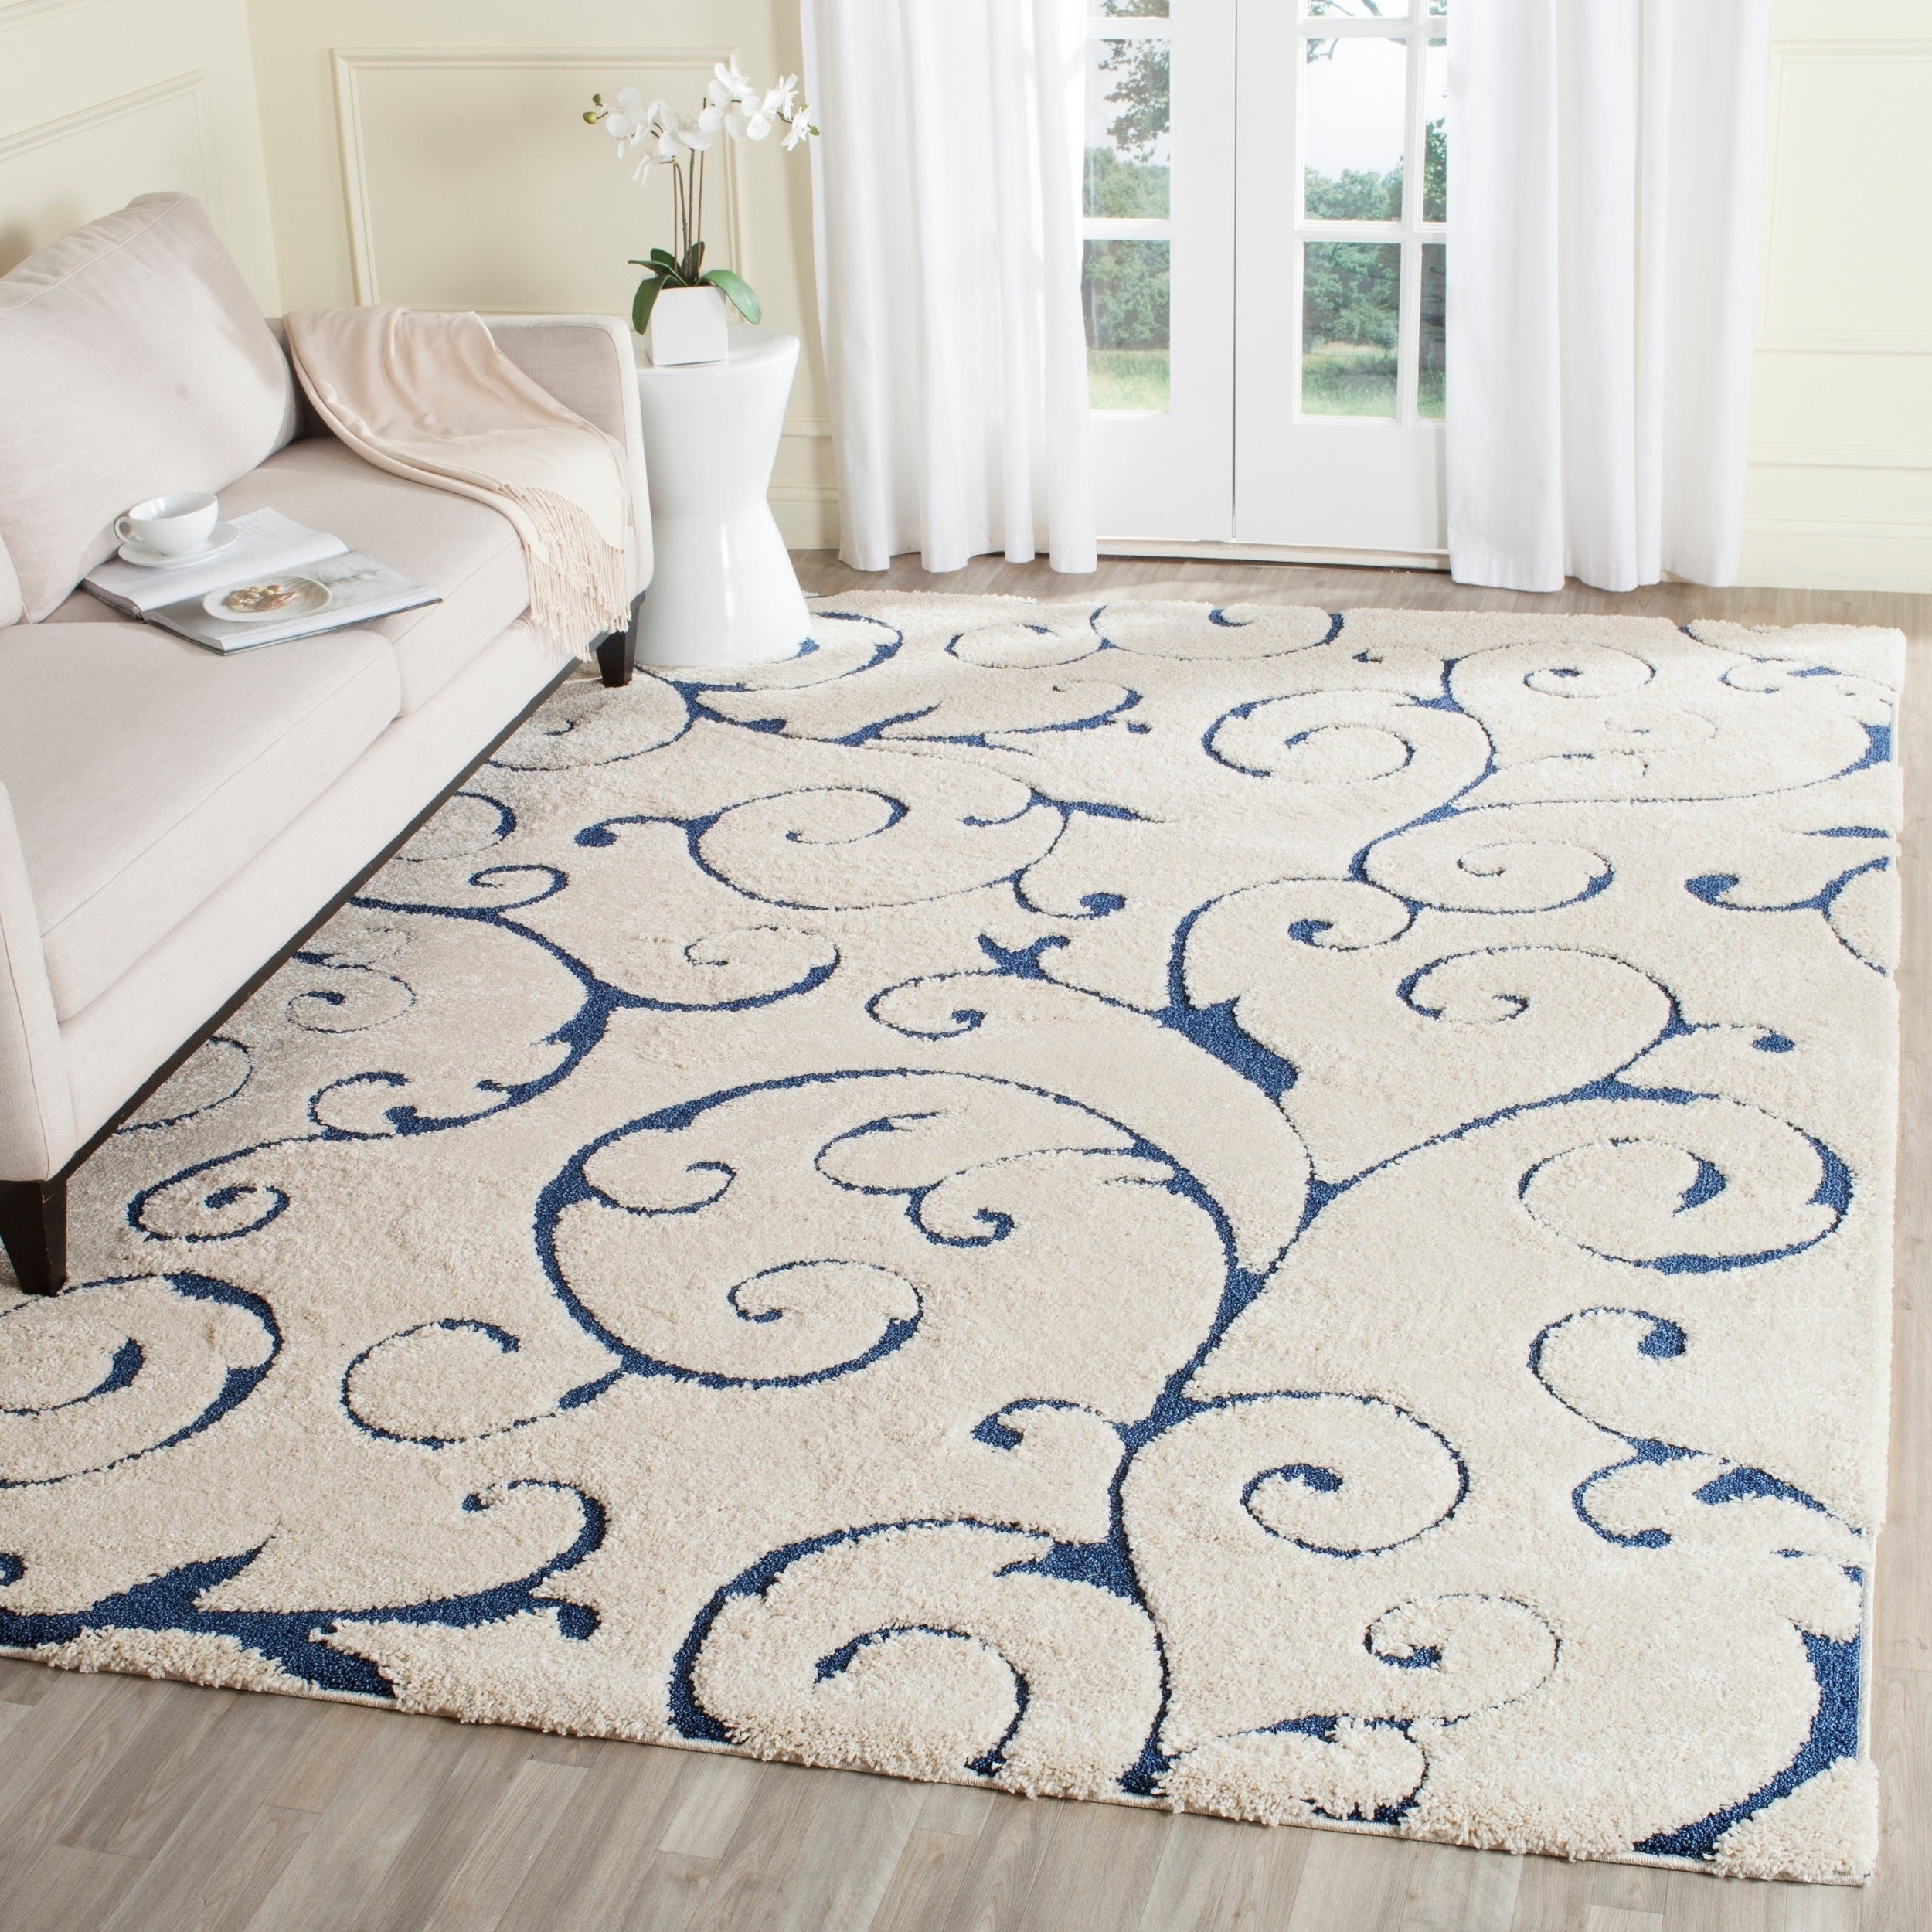 Safavieh Florida Scrollwork Elegance Cream Blue Area Rug 8 X 10 On Free Shipping Today 11739219